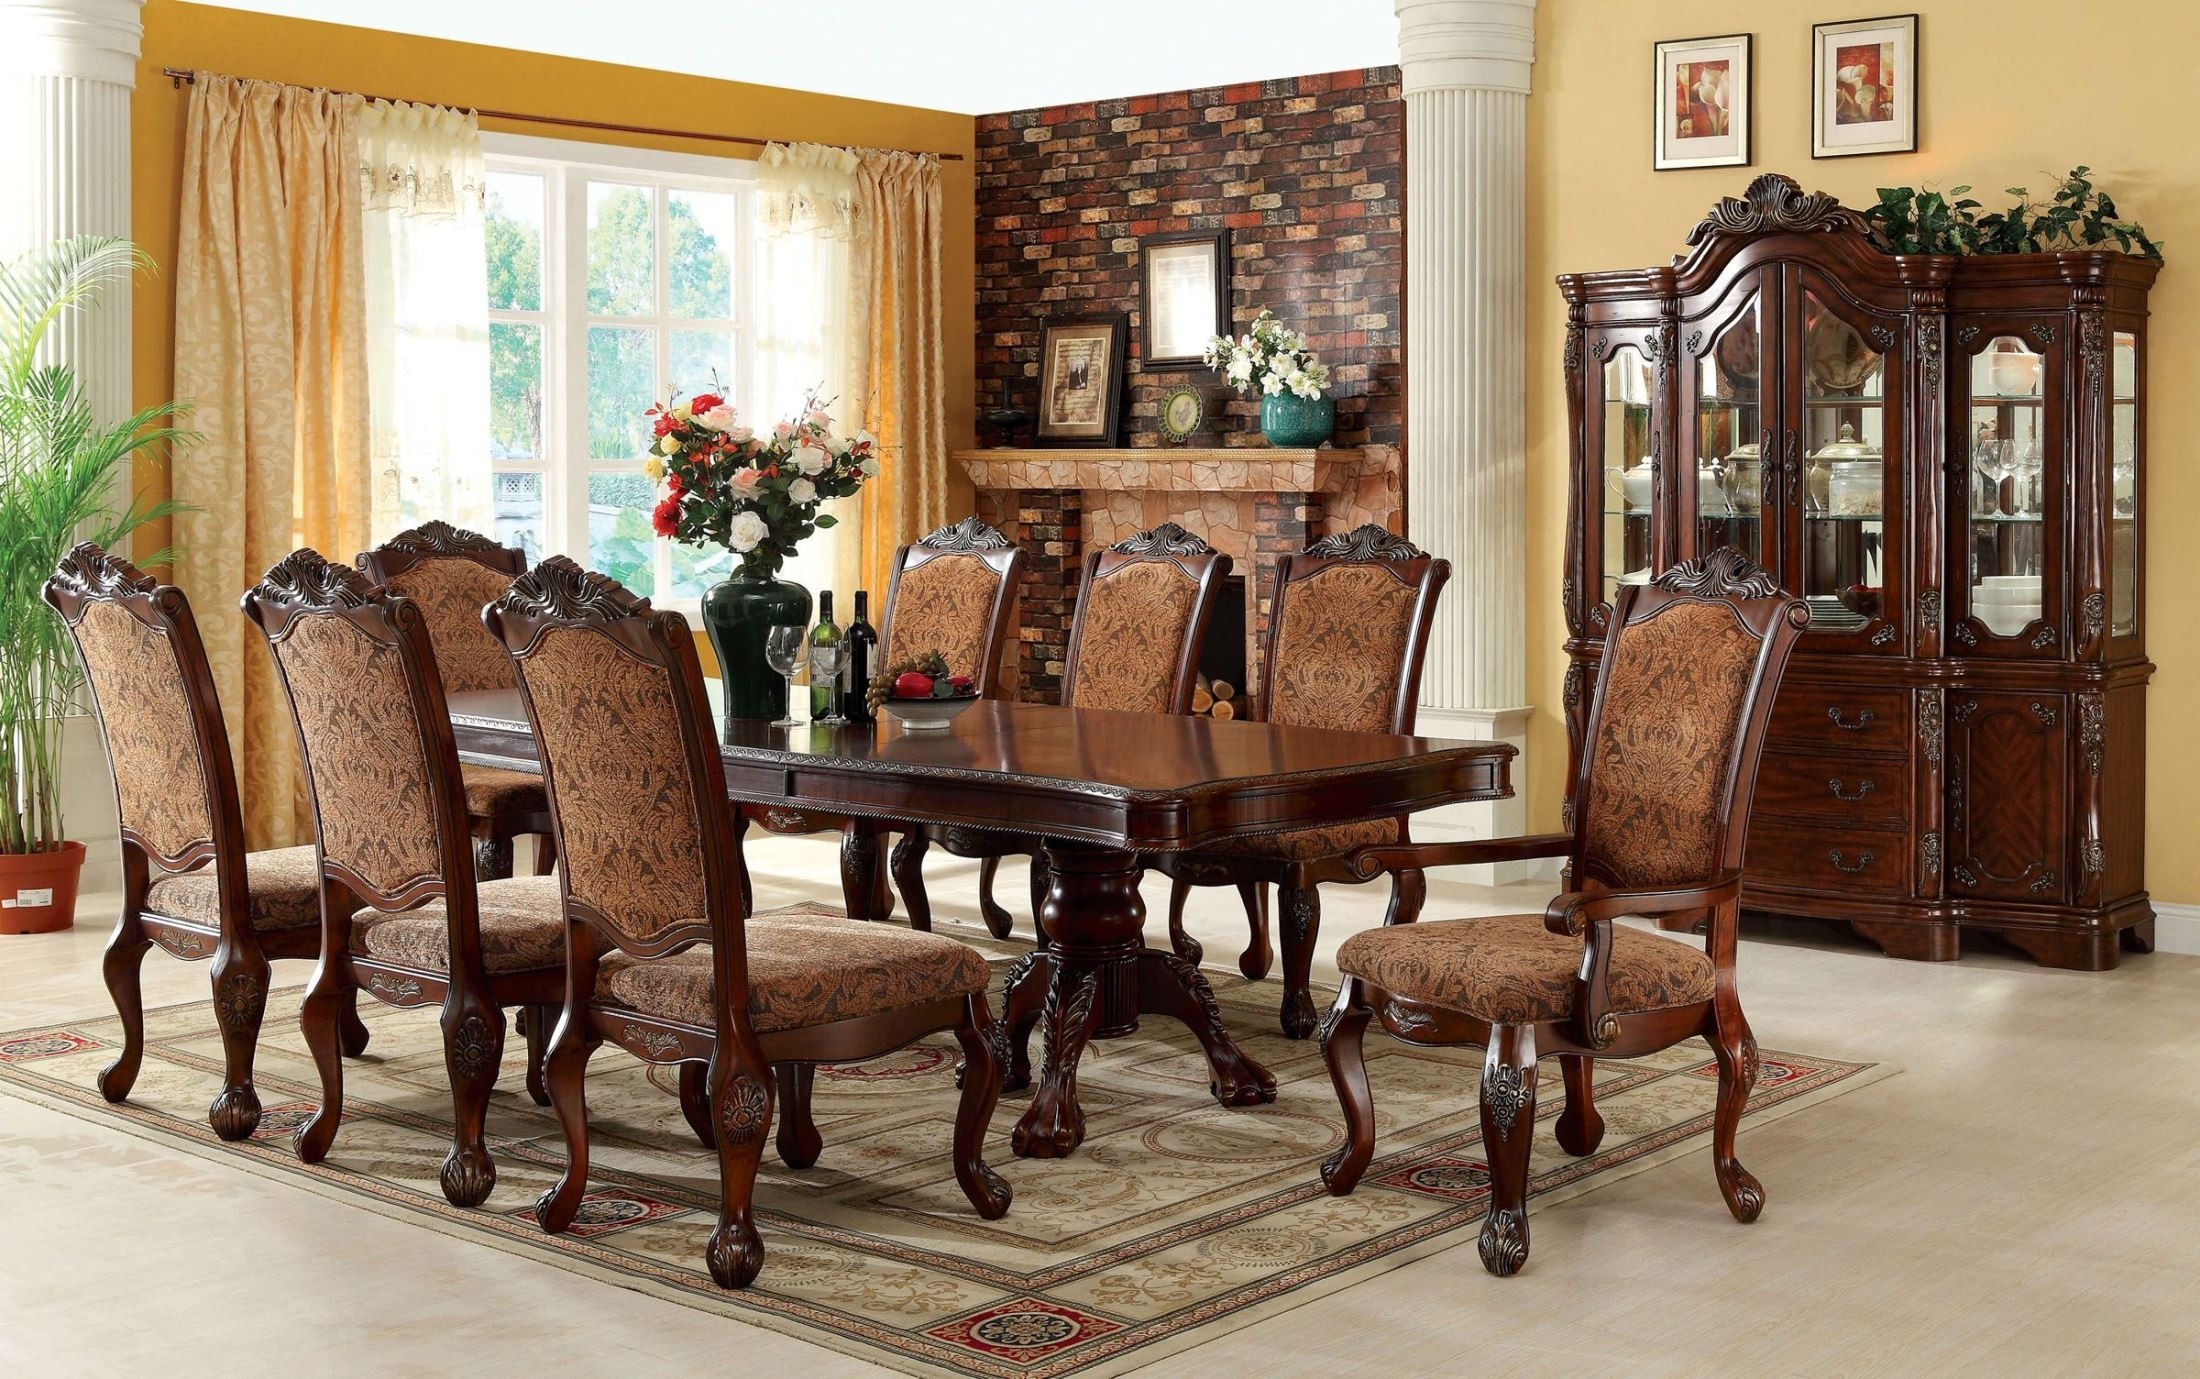 Cromwell antique cherry formal dining room set cm3103t for Dining room furnishings